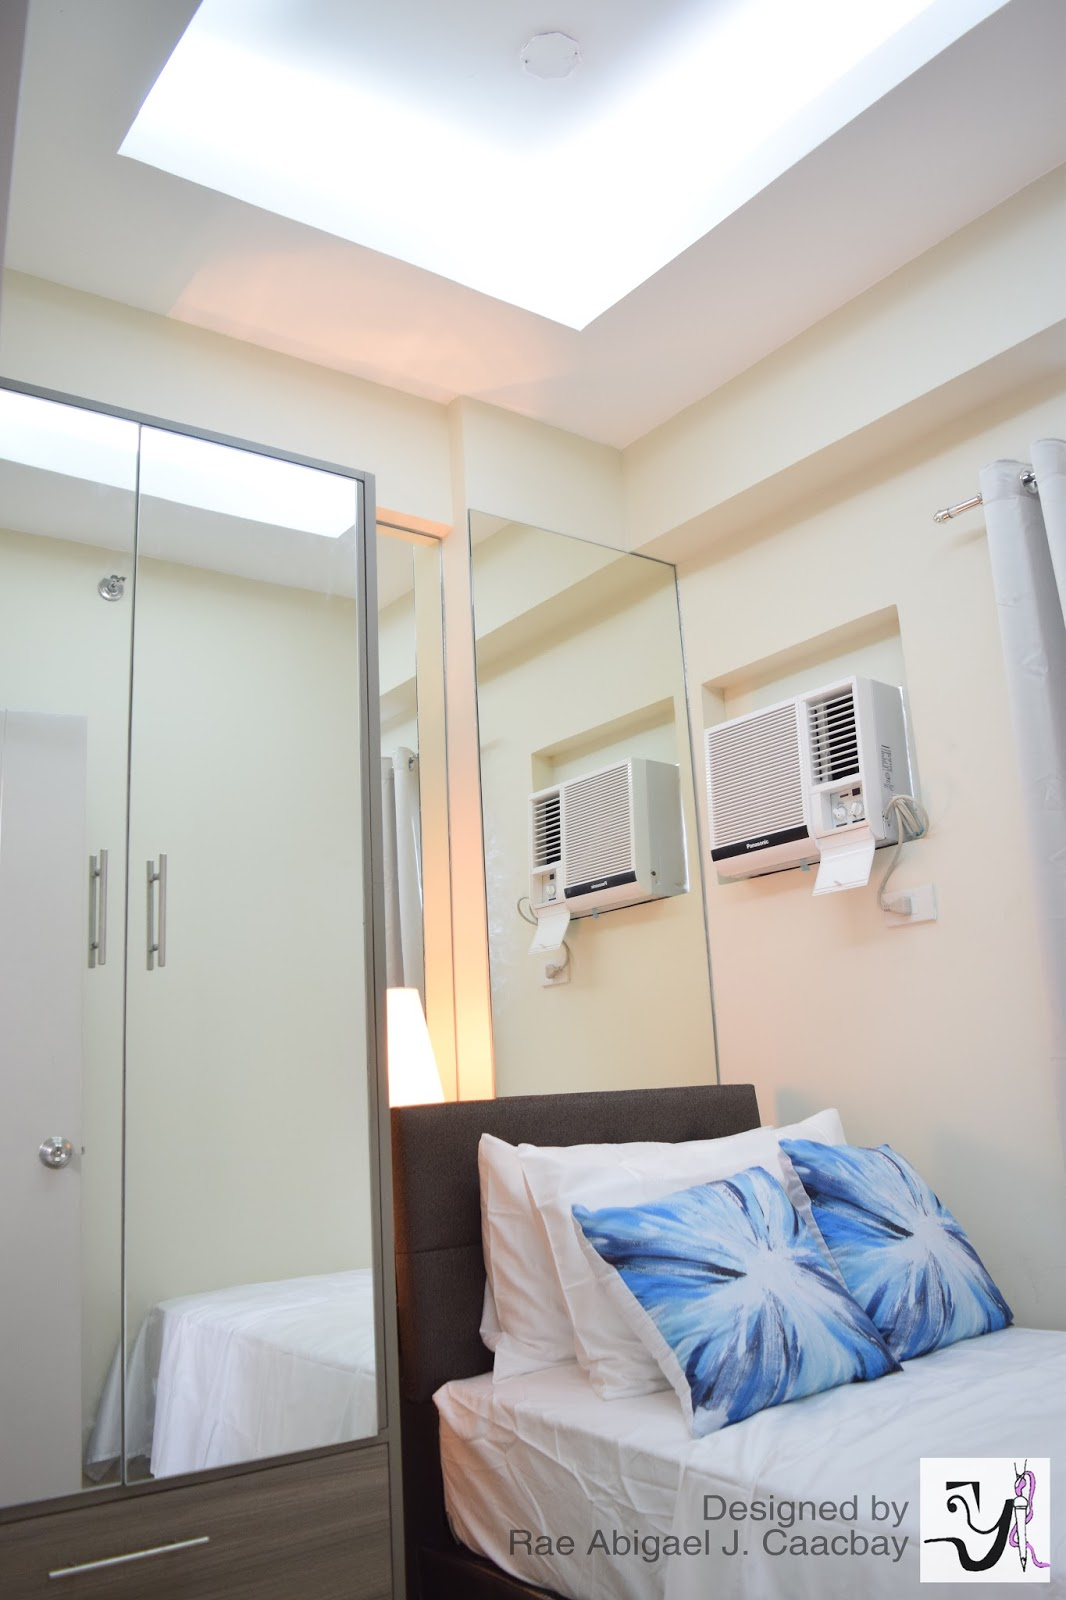 Bedroom design with wall mirror